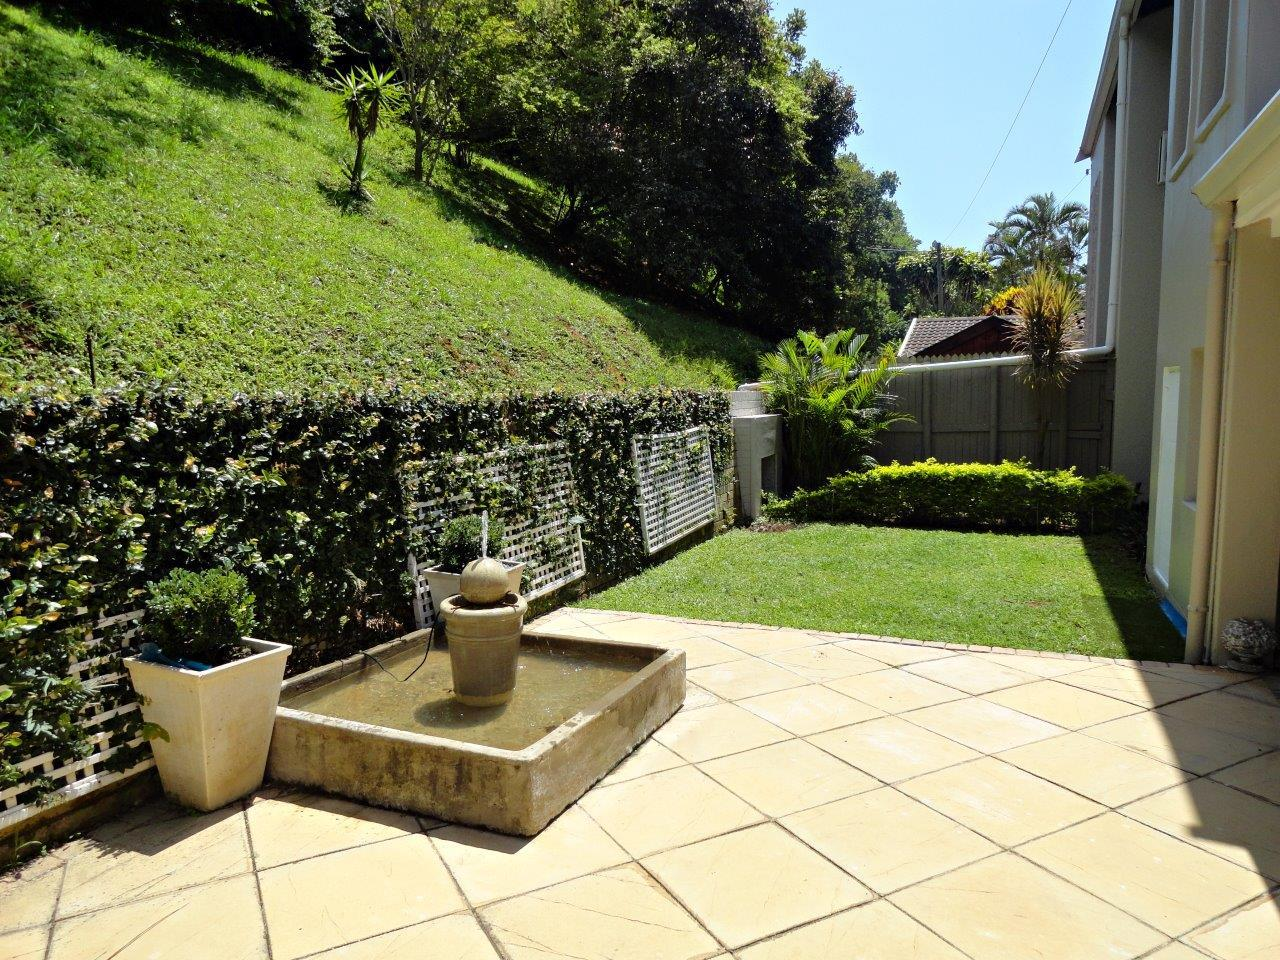 3 Bedroom House for sale in La Lucia 1802448 : photo#1